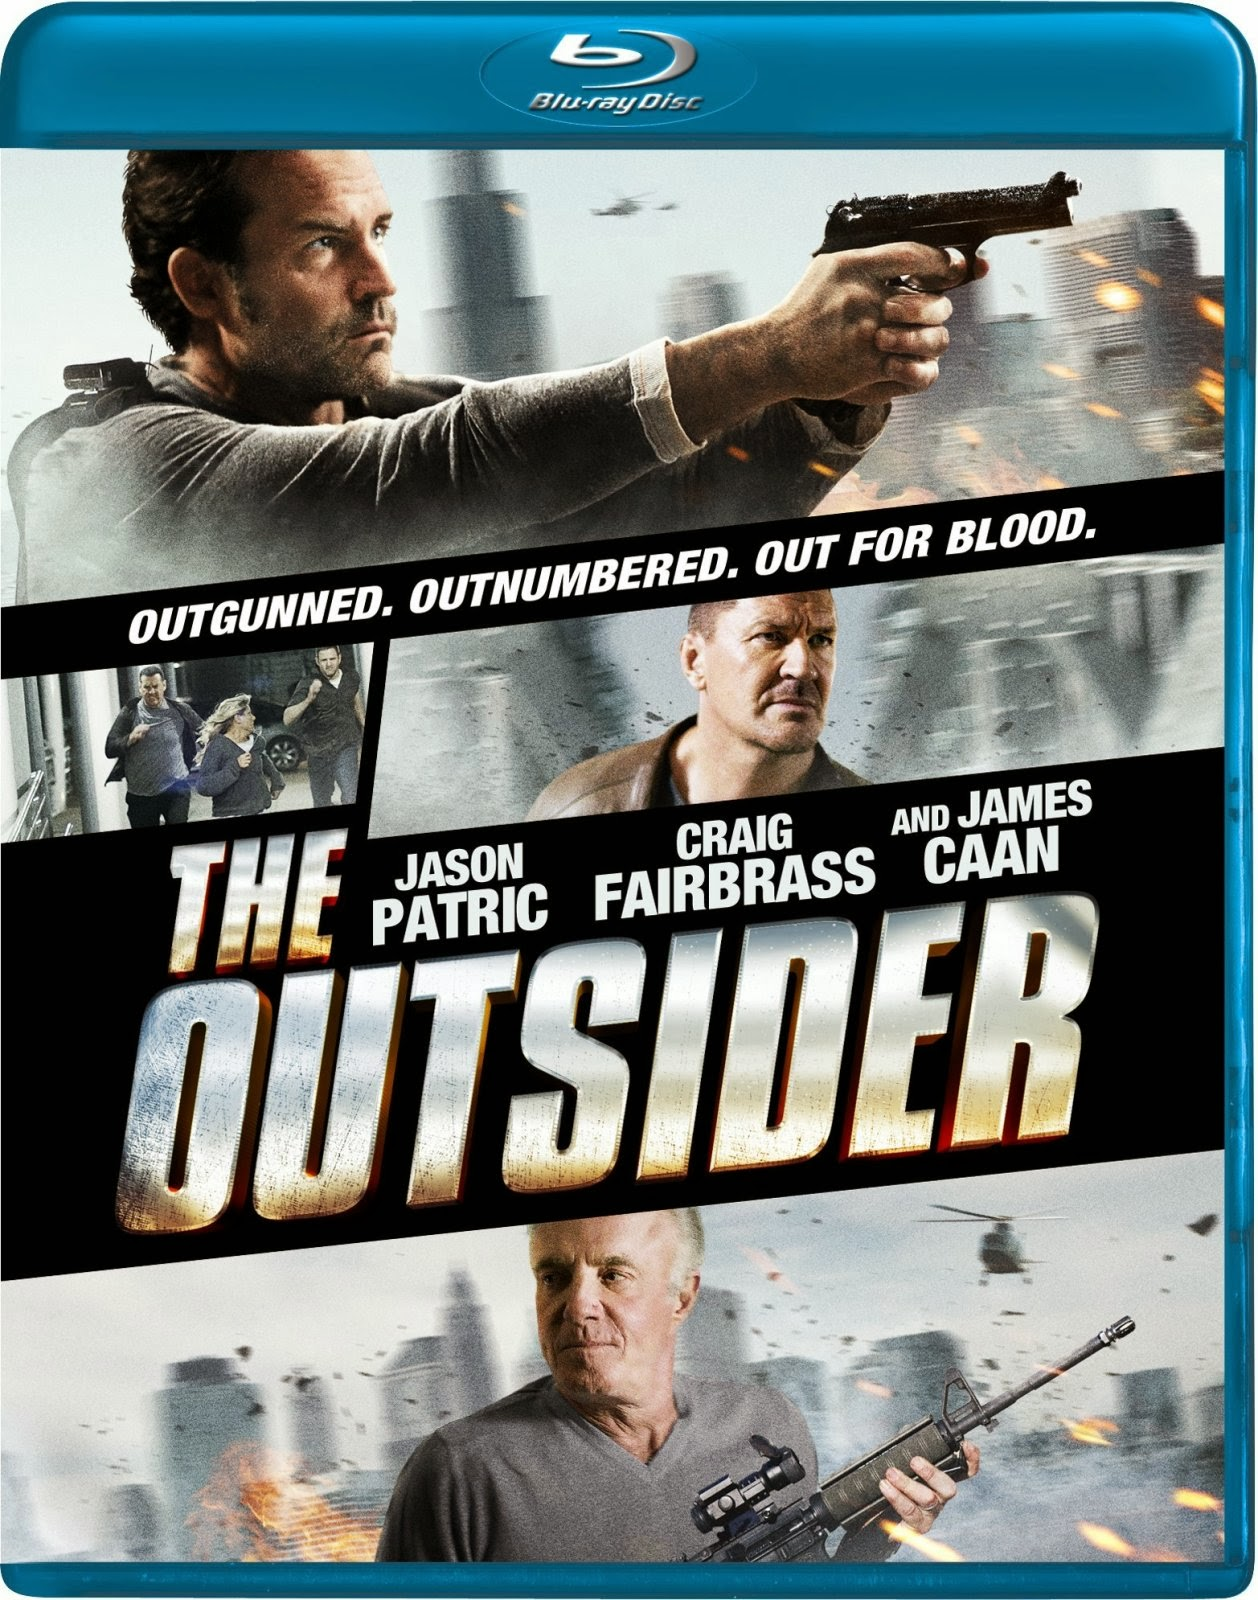 Download - The Outsider (2014)